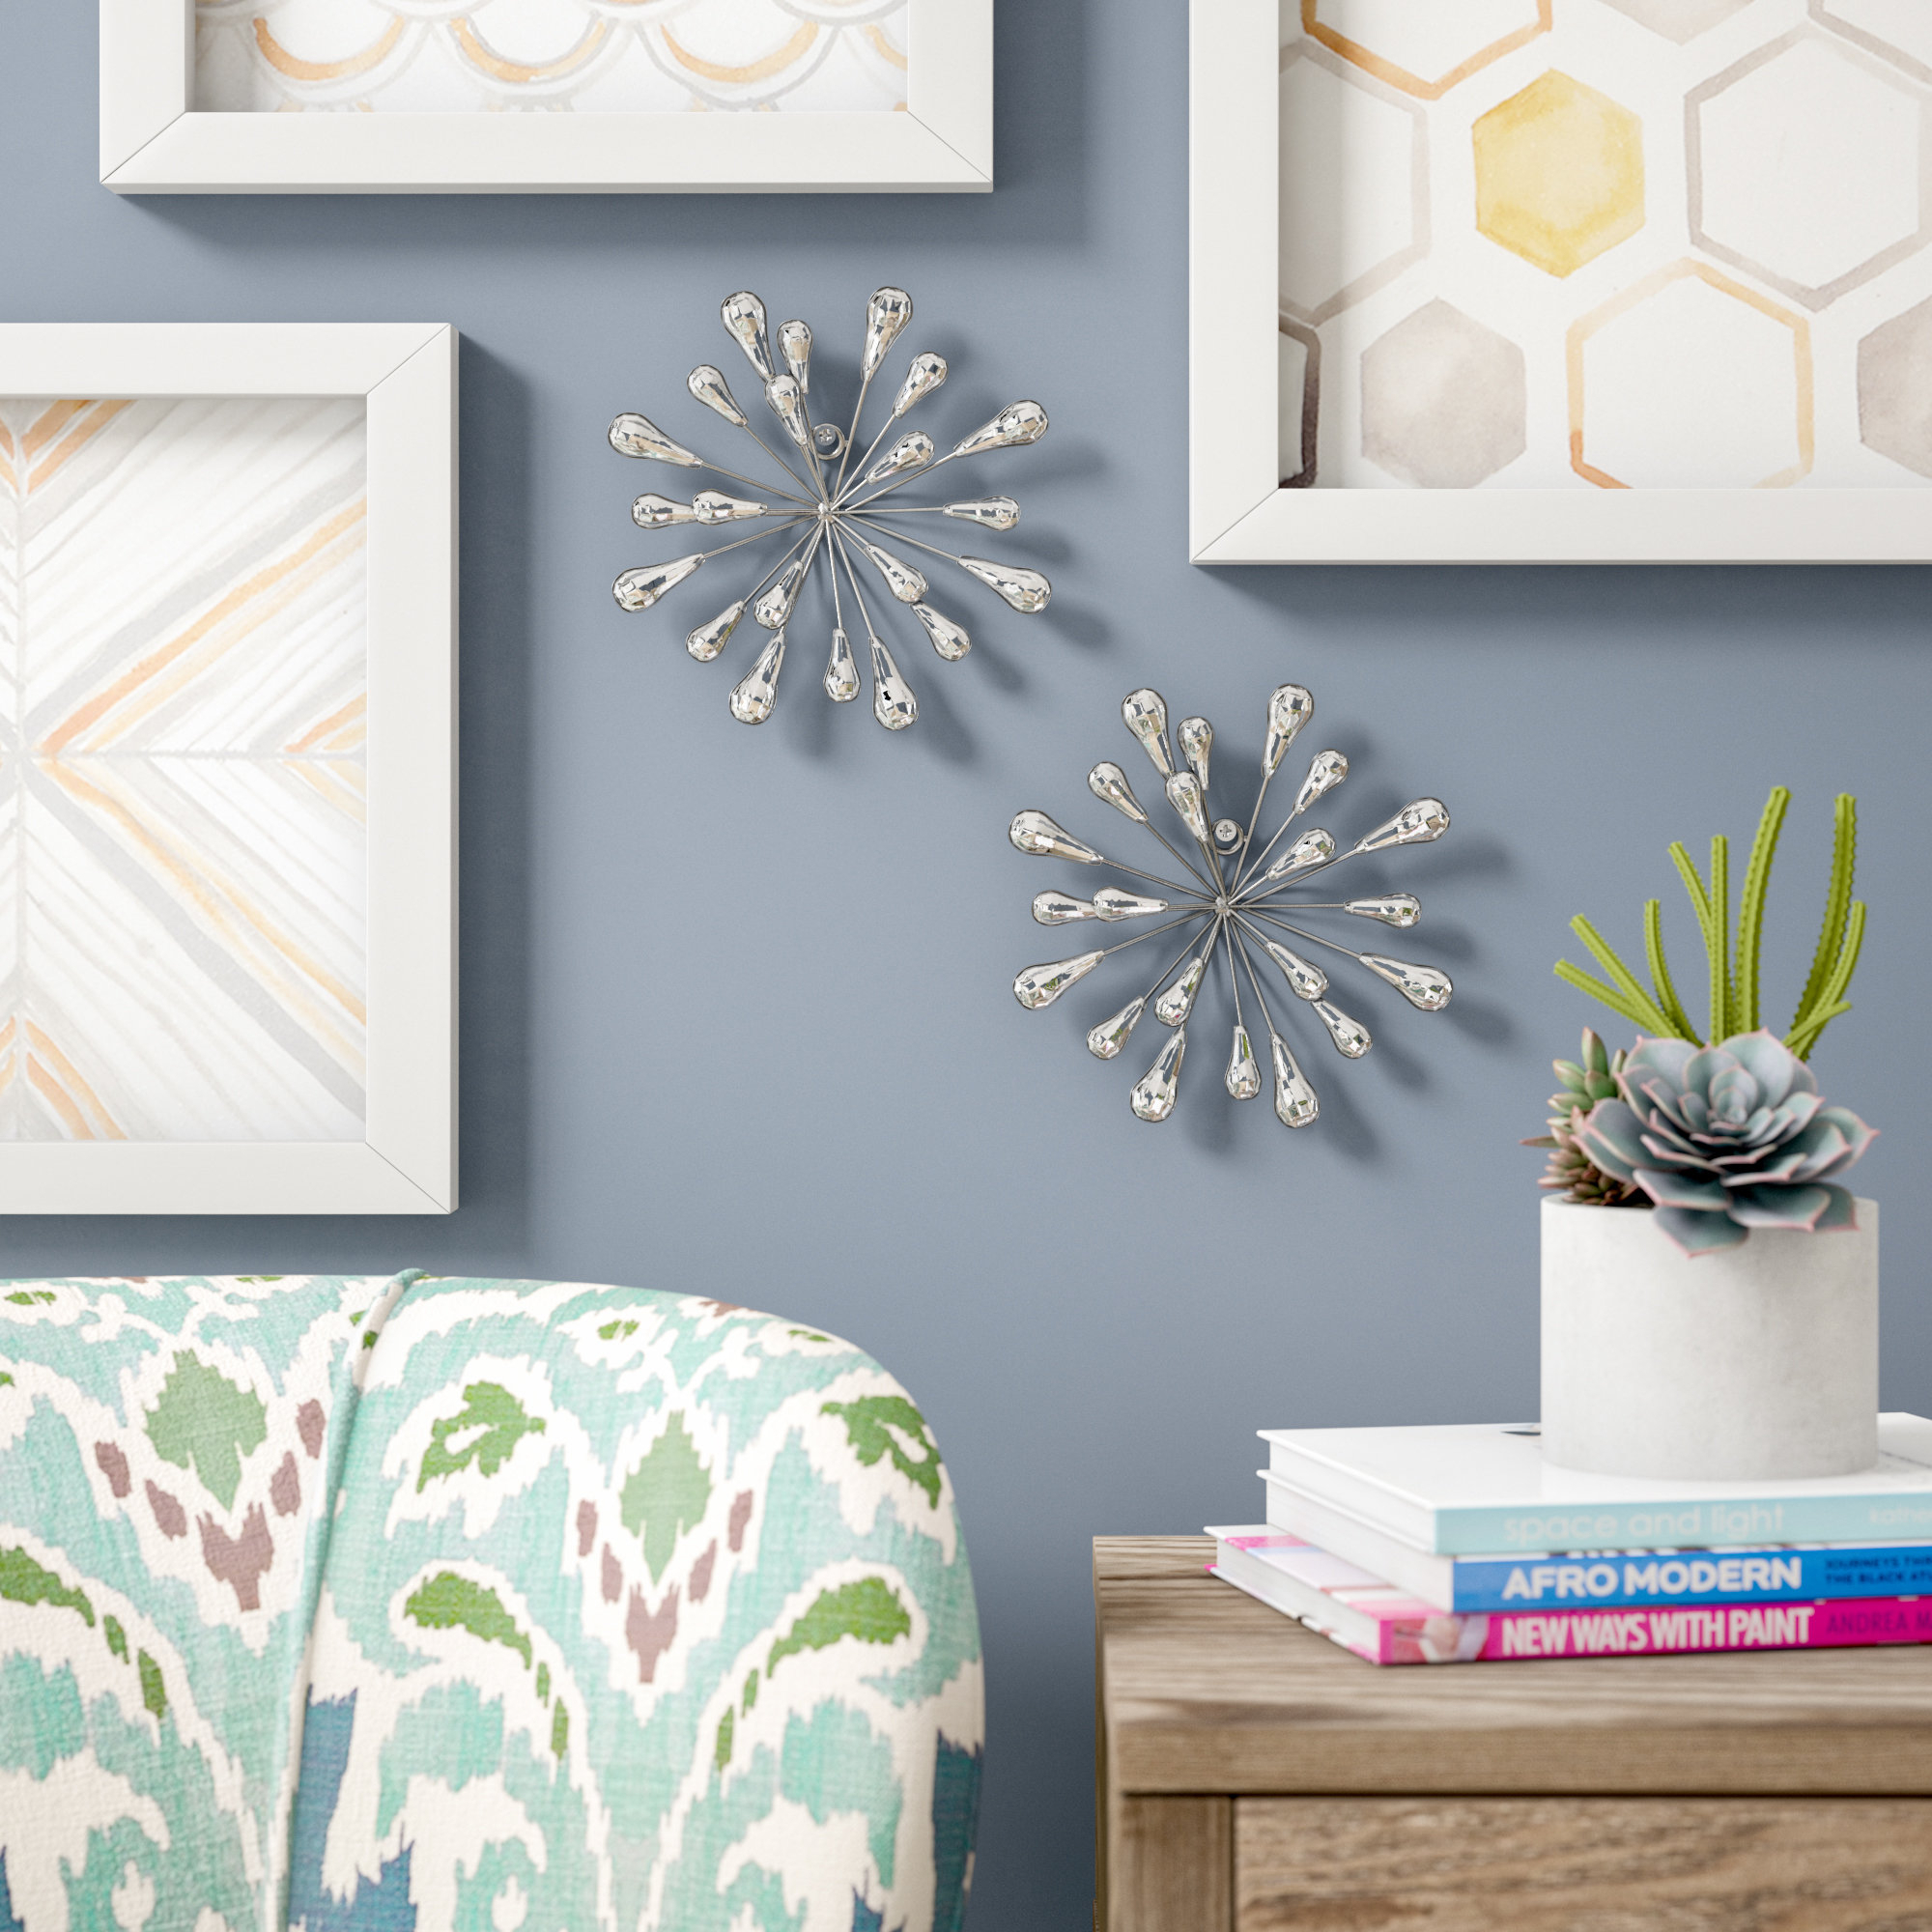 2 Piece Starburst Wall Décor Set inside 3 Piece Wall Decor Sets By Wrought Studio (Image 3 of 30)